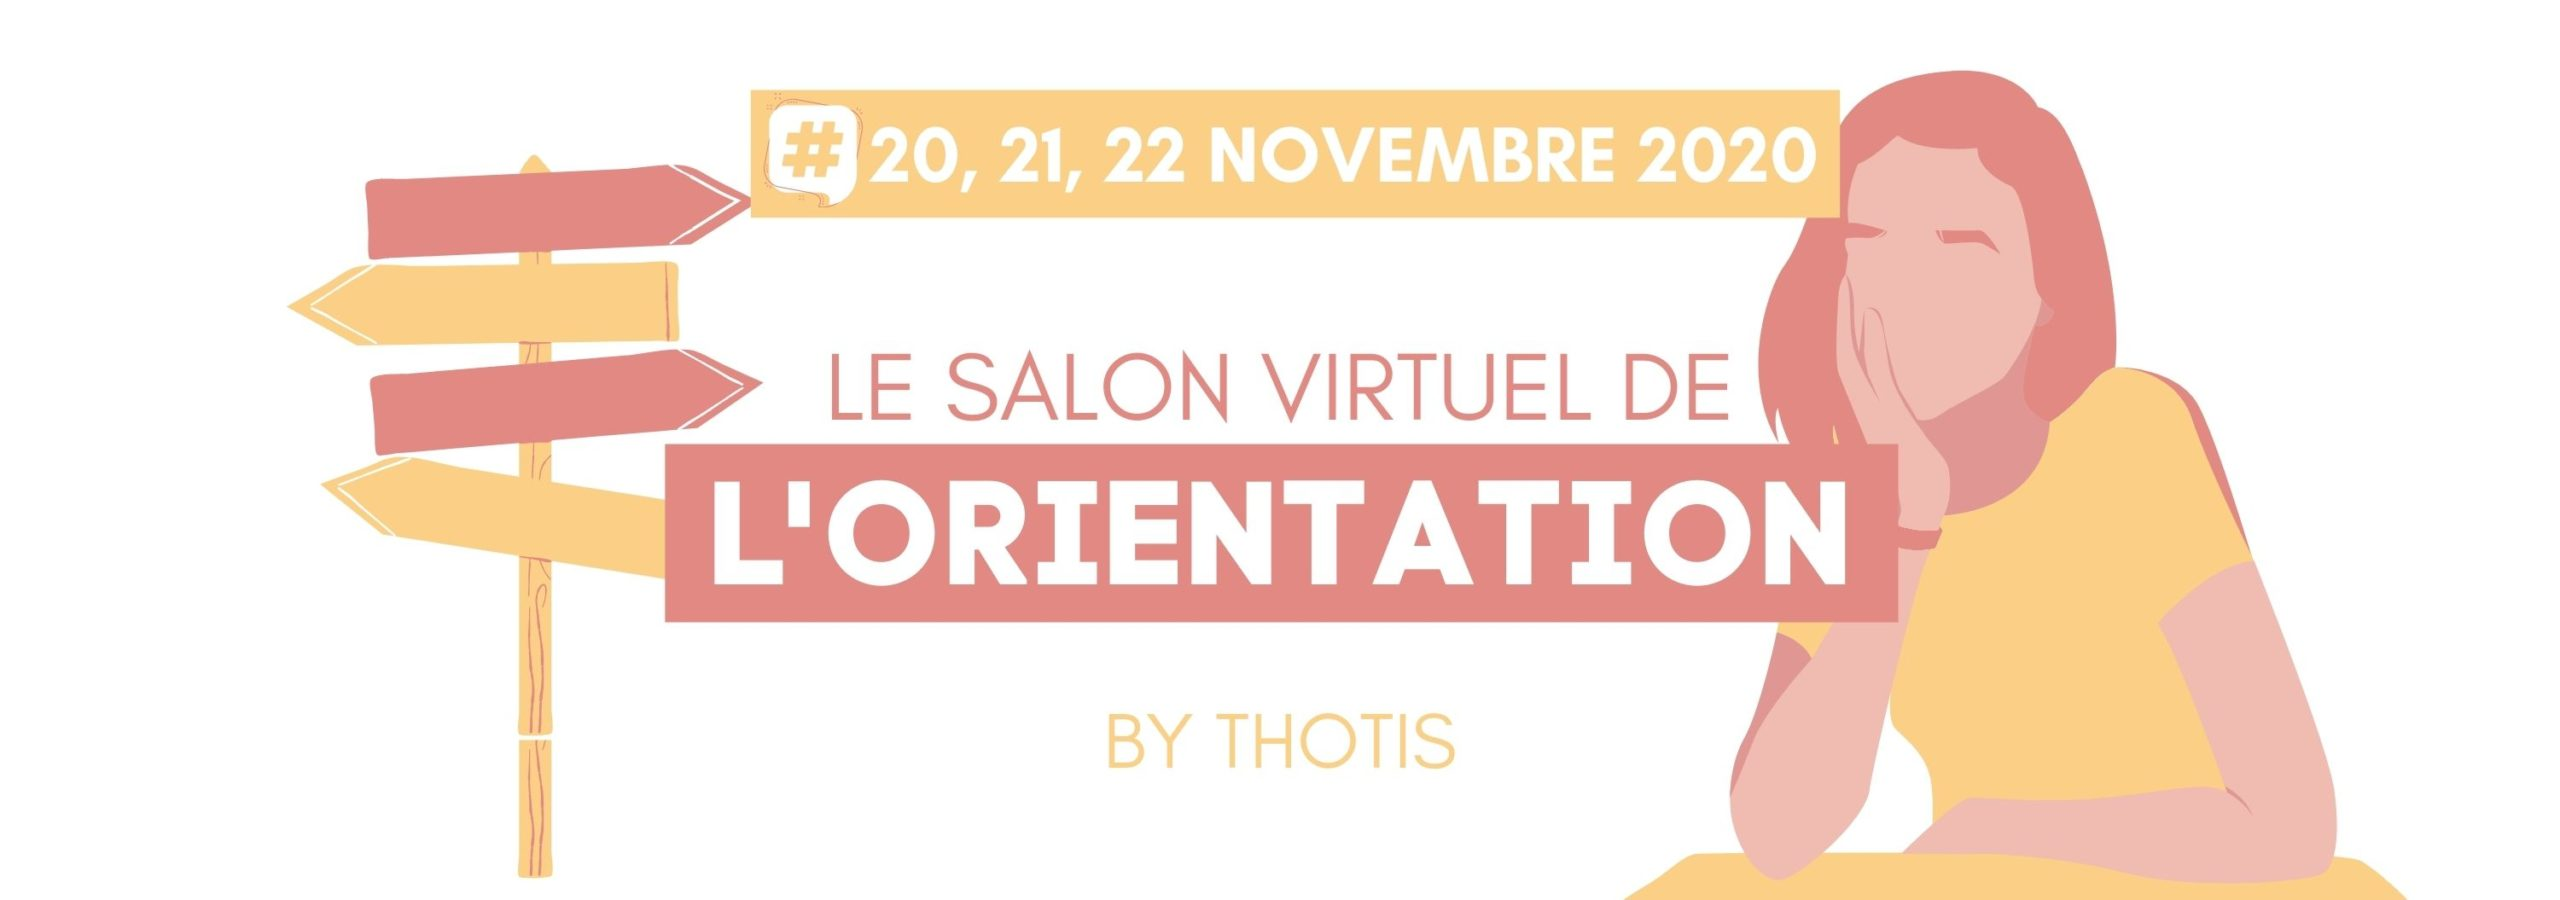 couv_salon_orientation_virtuel_Thotis